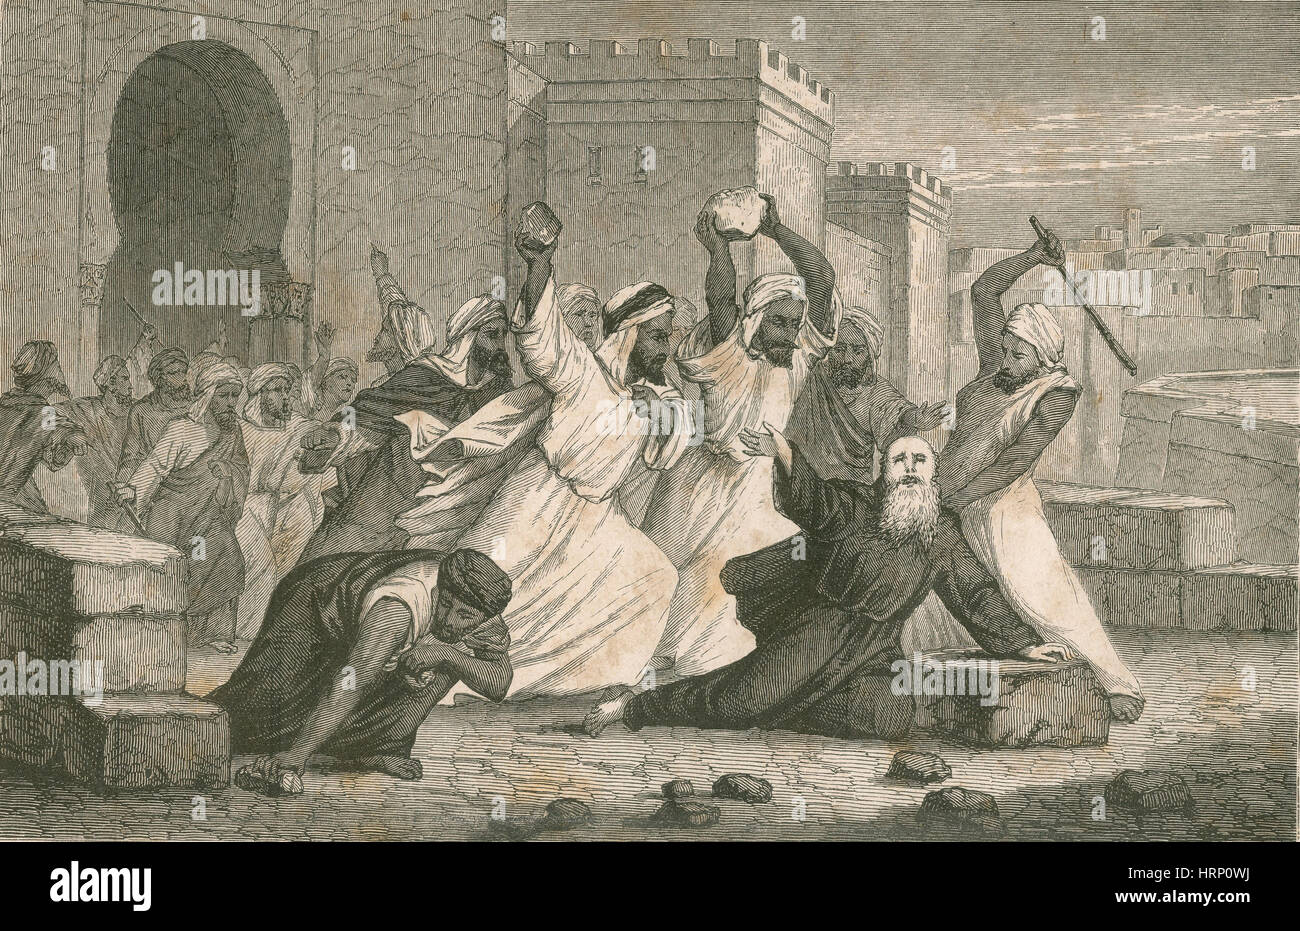 Ramon Llull Stoned to Death by Muslims - Stock Image